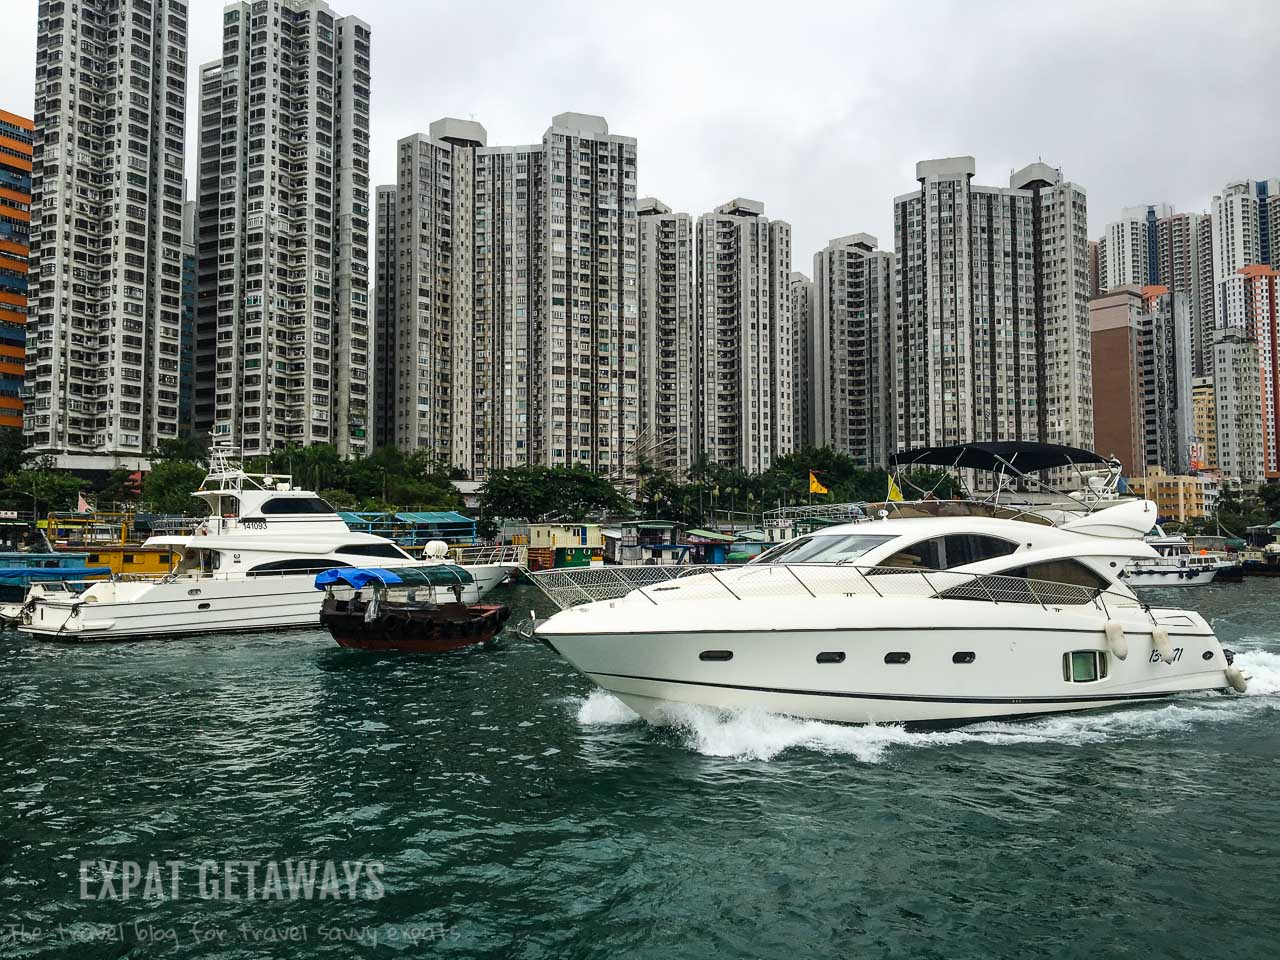 A sampan slips past a luxury yacht. Only in Hong Kong...